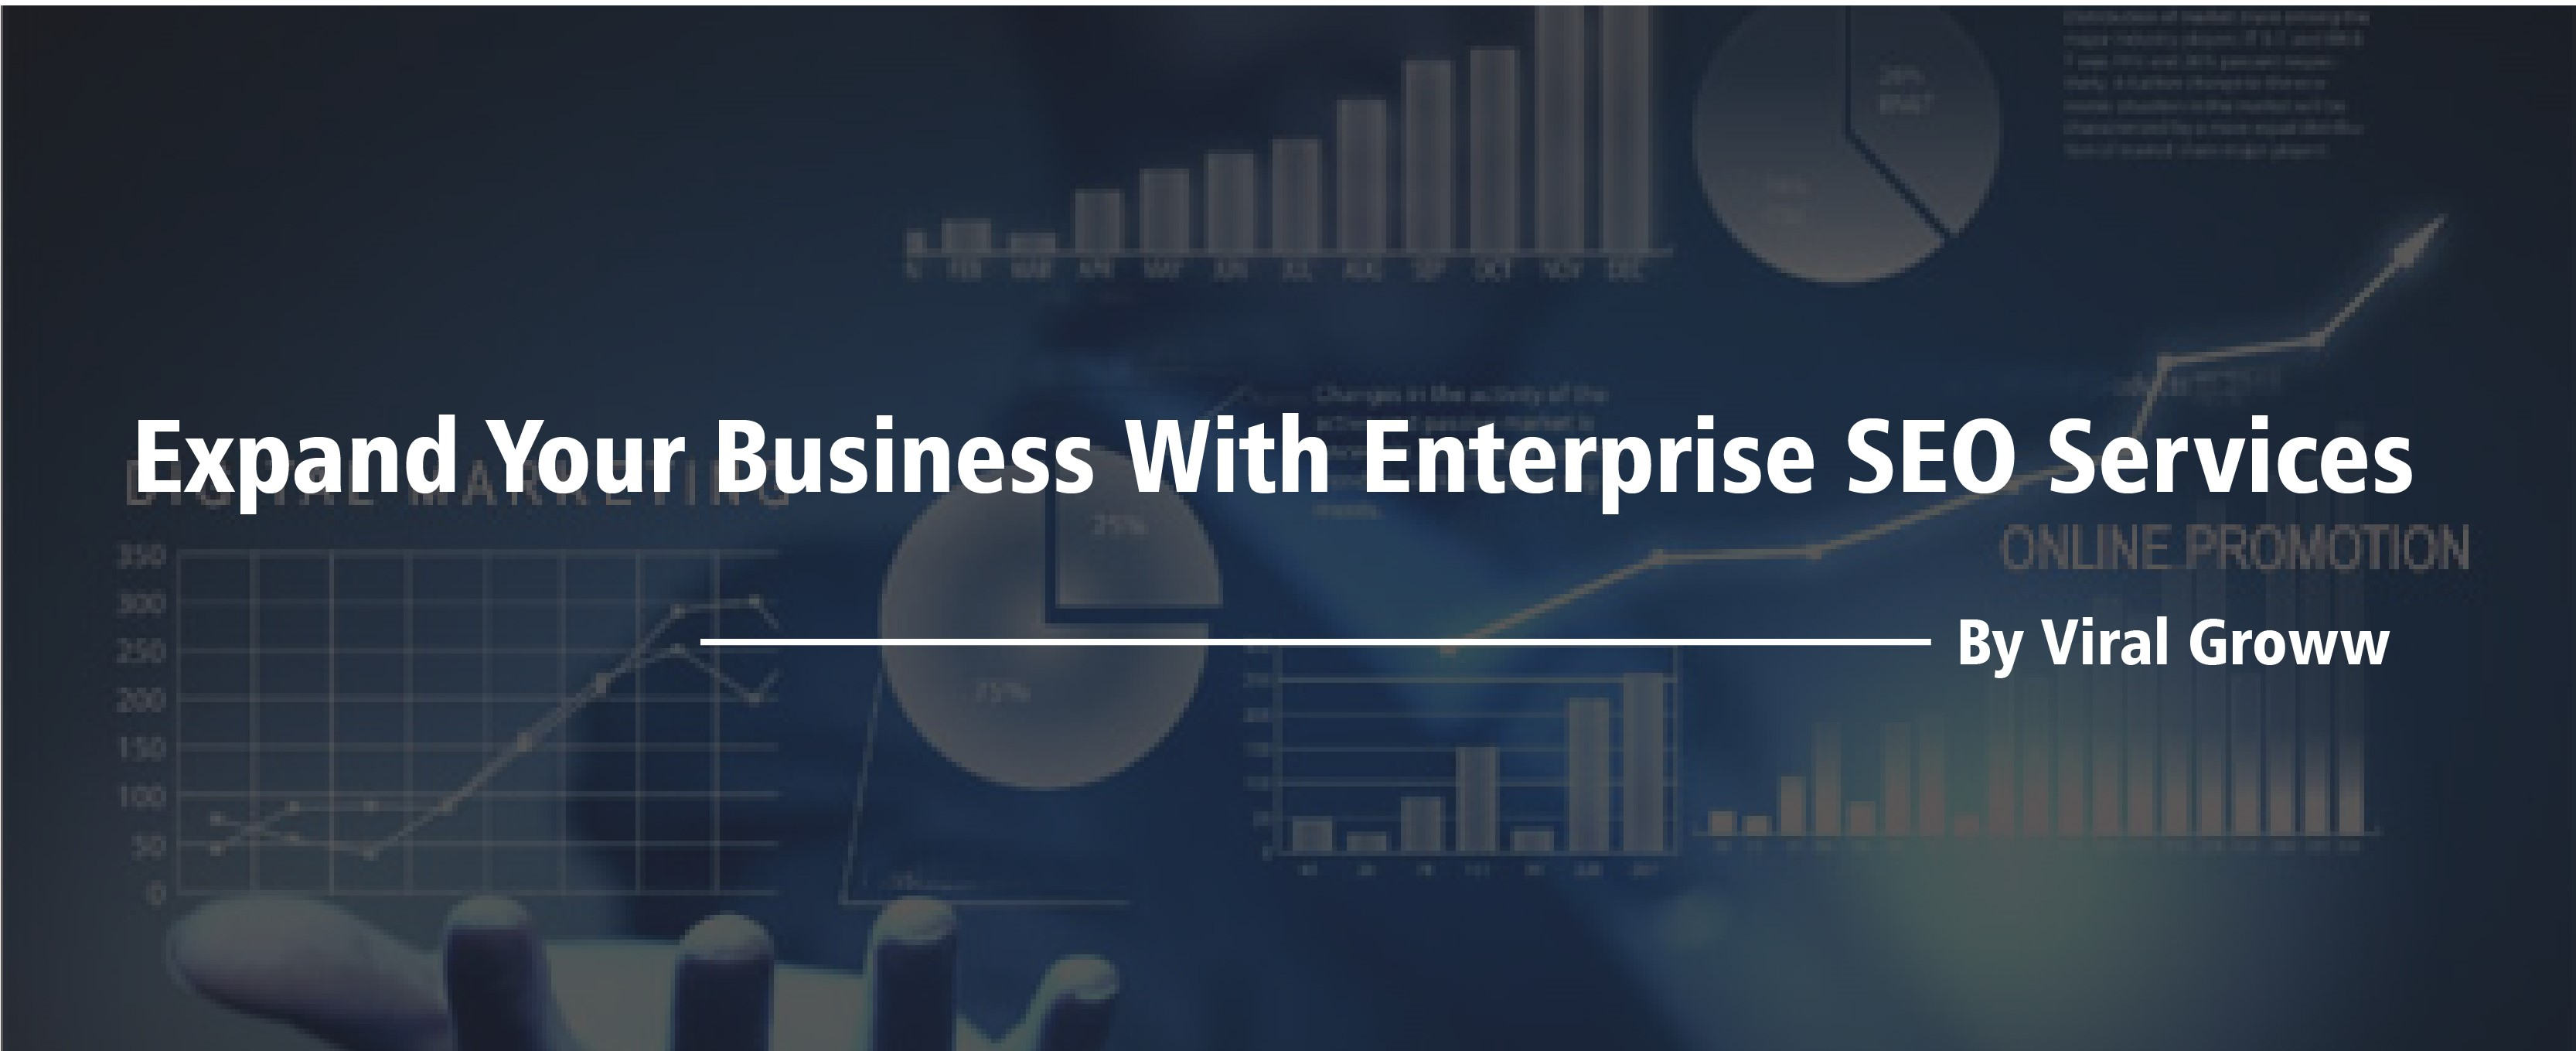 Expand your business with Enterprise SEO services